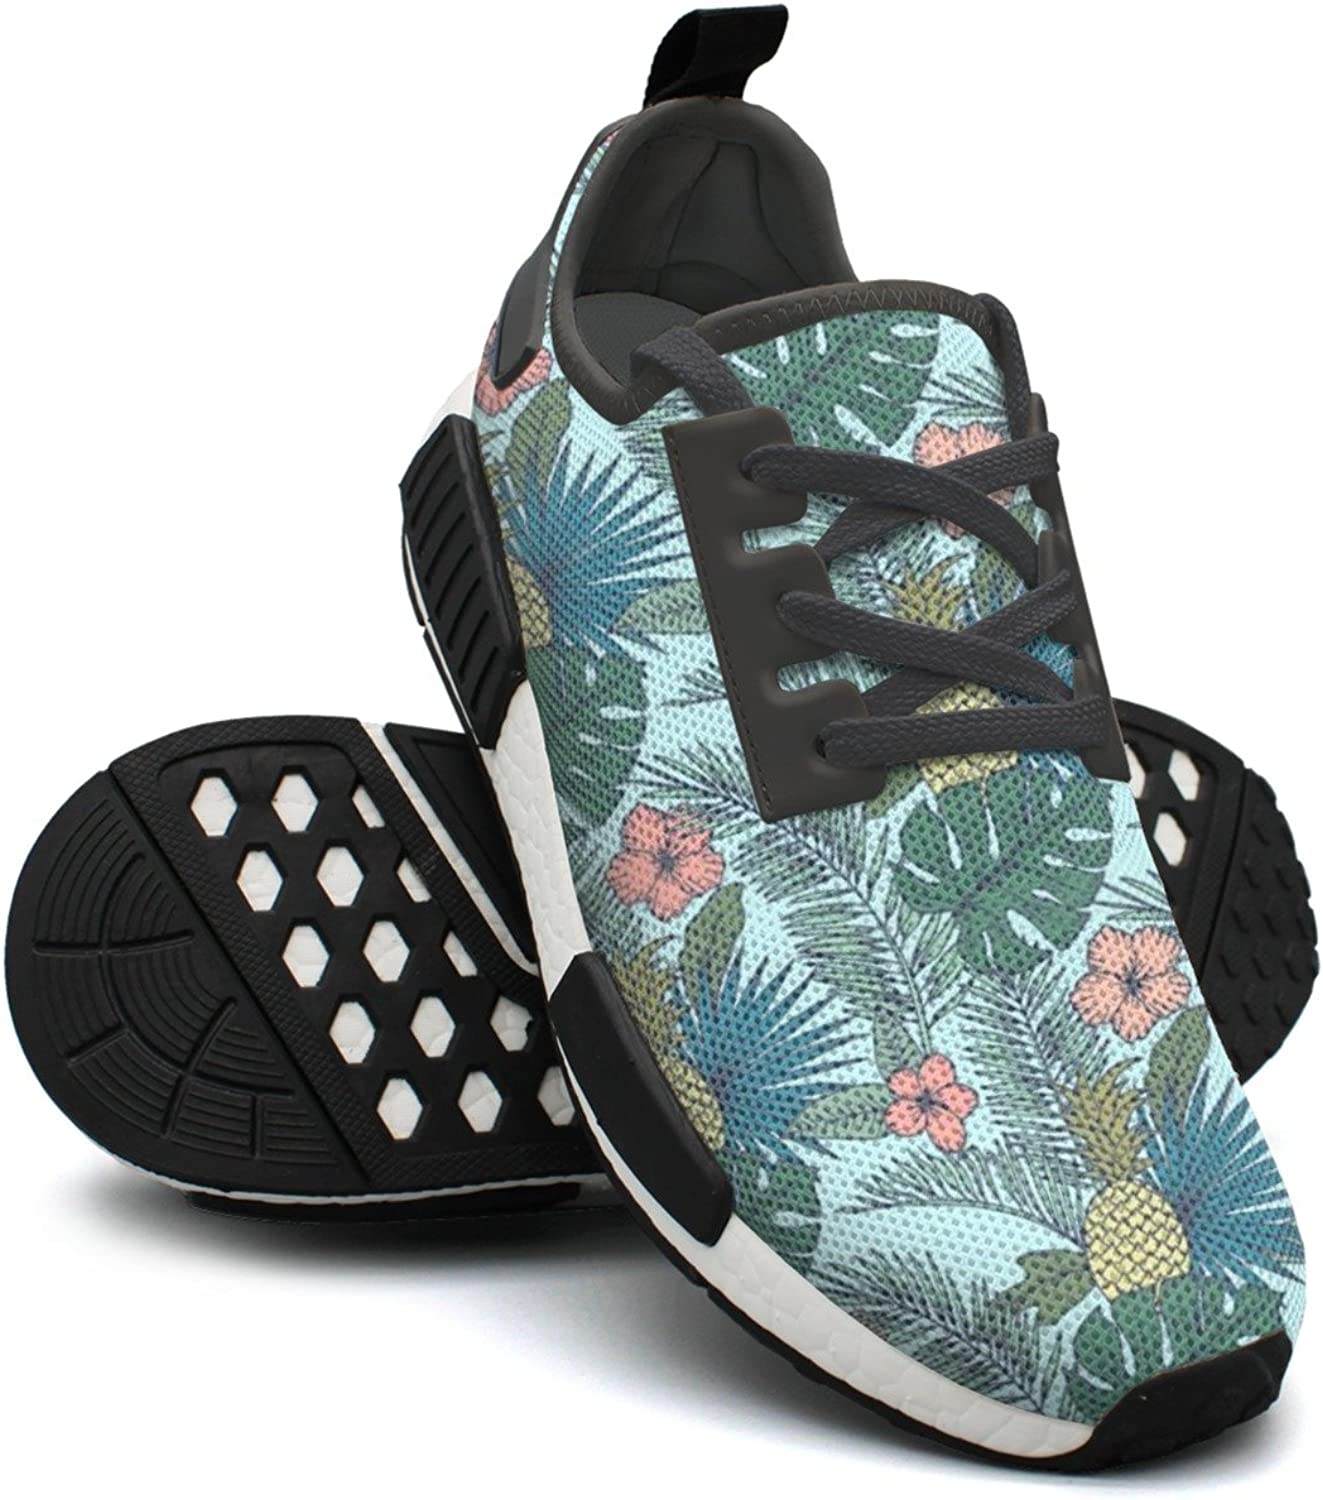 Ktyyuwwww Young Women colorful Cool Tropical Hawaiian Pineapple Palm Leaf Running shoes